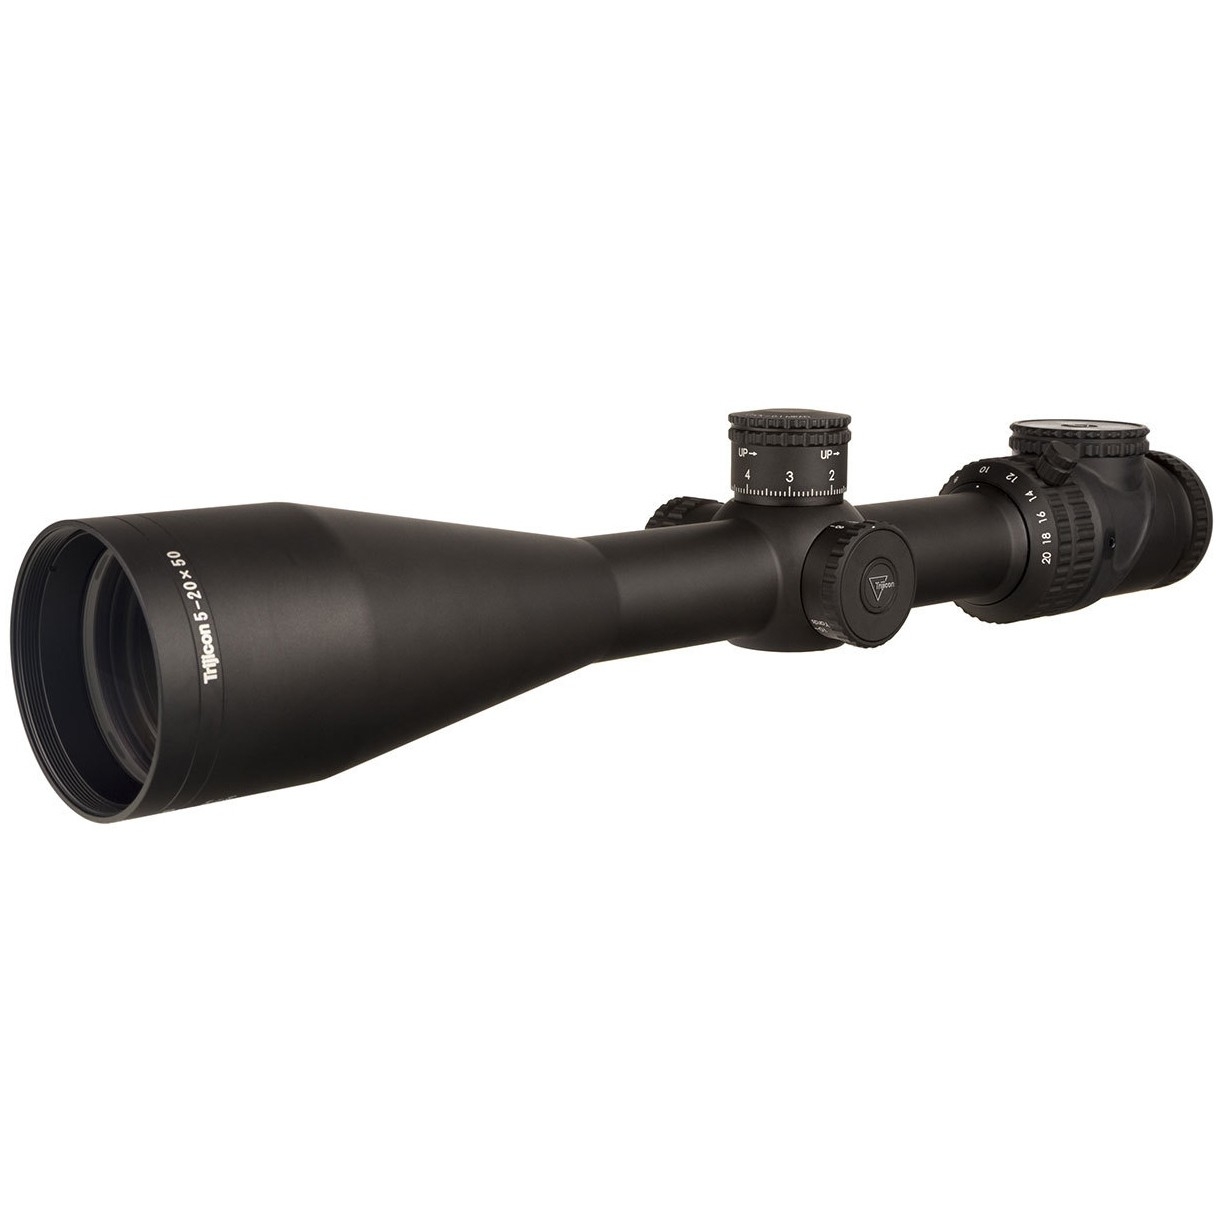 Trijicon 5-20x50 AccuPoint 30mm Rifle Scope